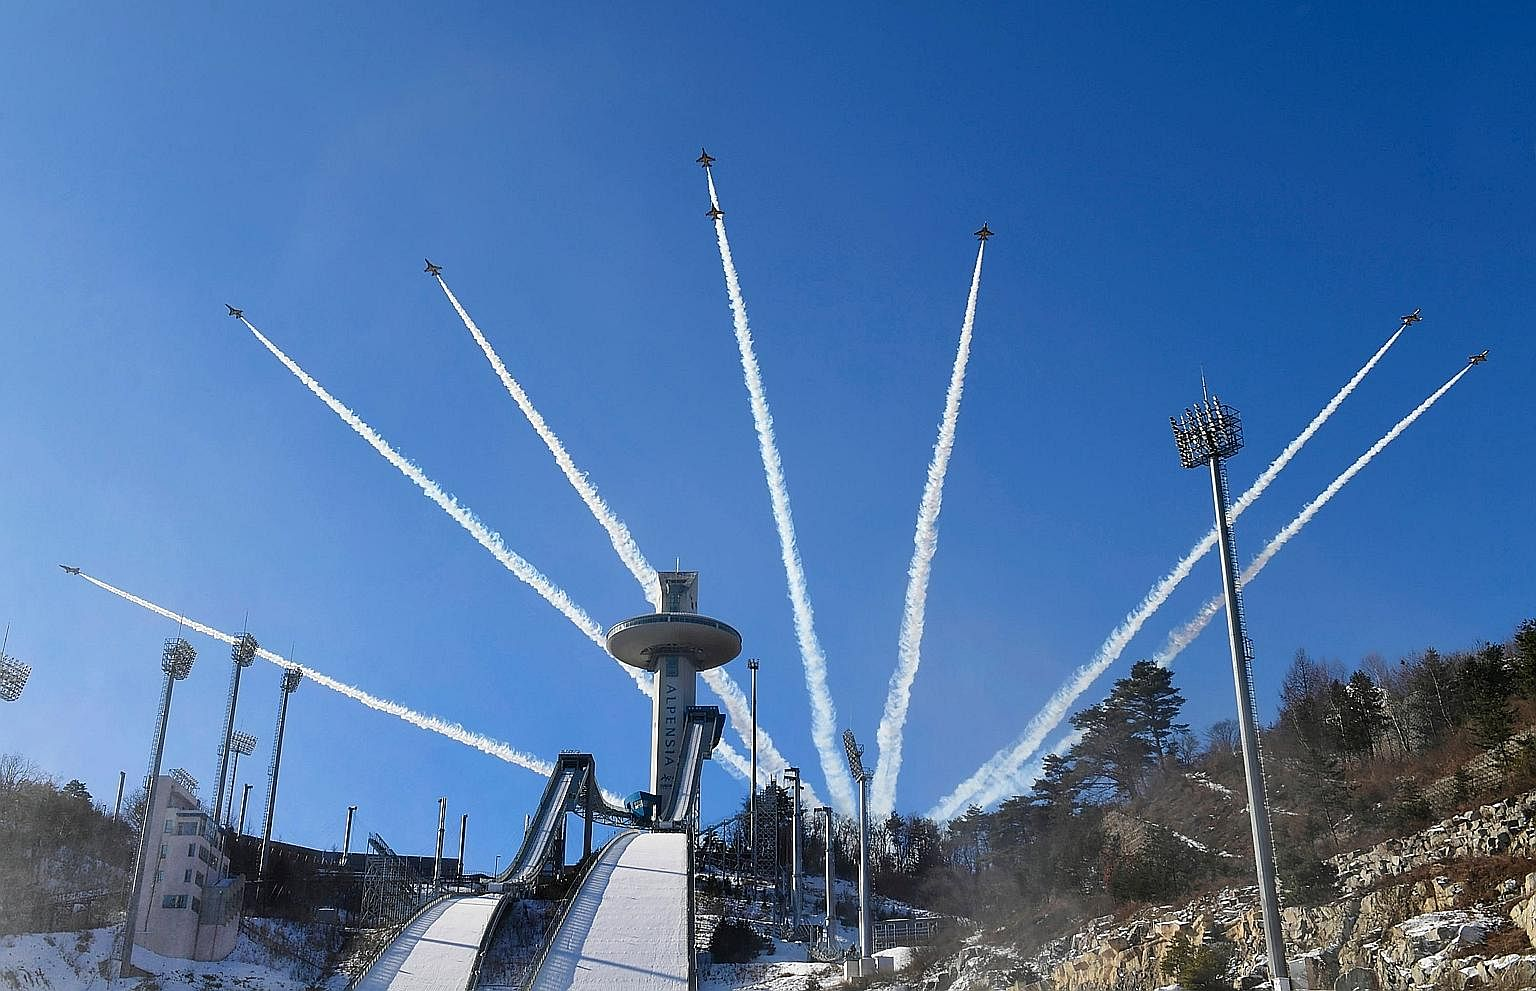 Members of the South Korean air force Black Eagle aerobatic team performing above the ski jump venue of the Pyeongchang 2018 Winter Olympics earlier this week. North Korea is sending a delegation consisting of athletes, high-ranking officials and a c